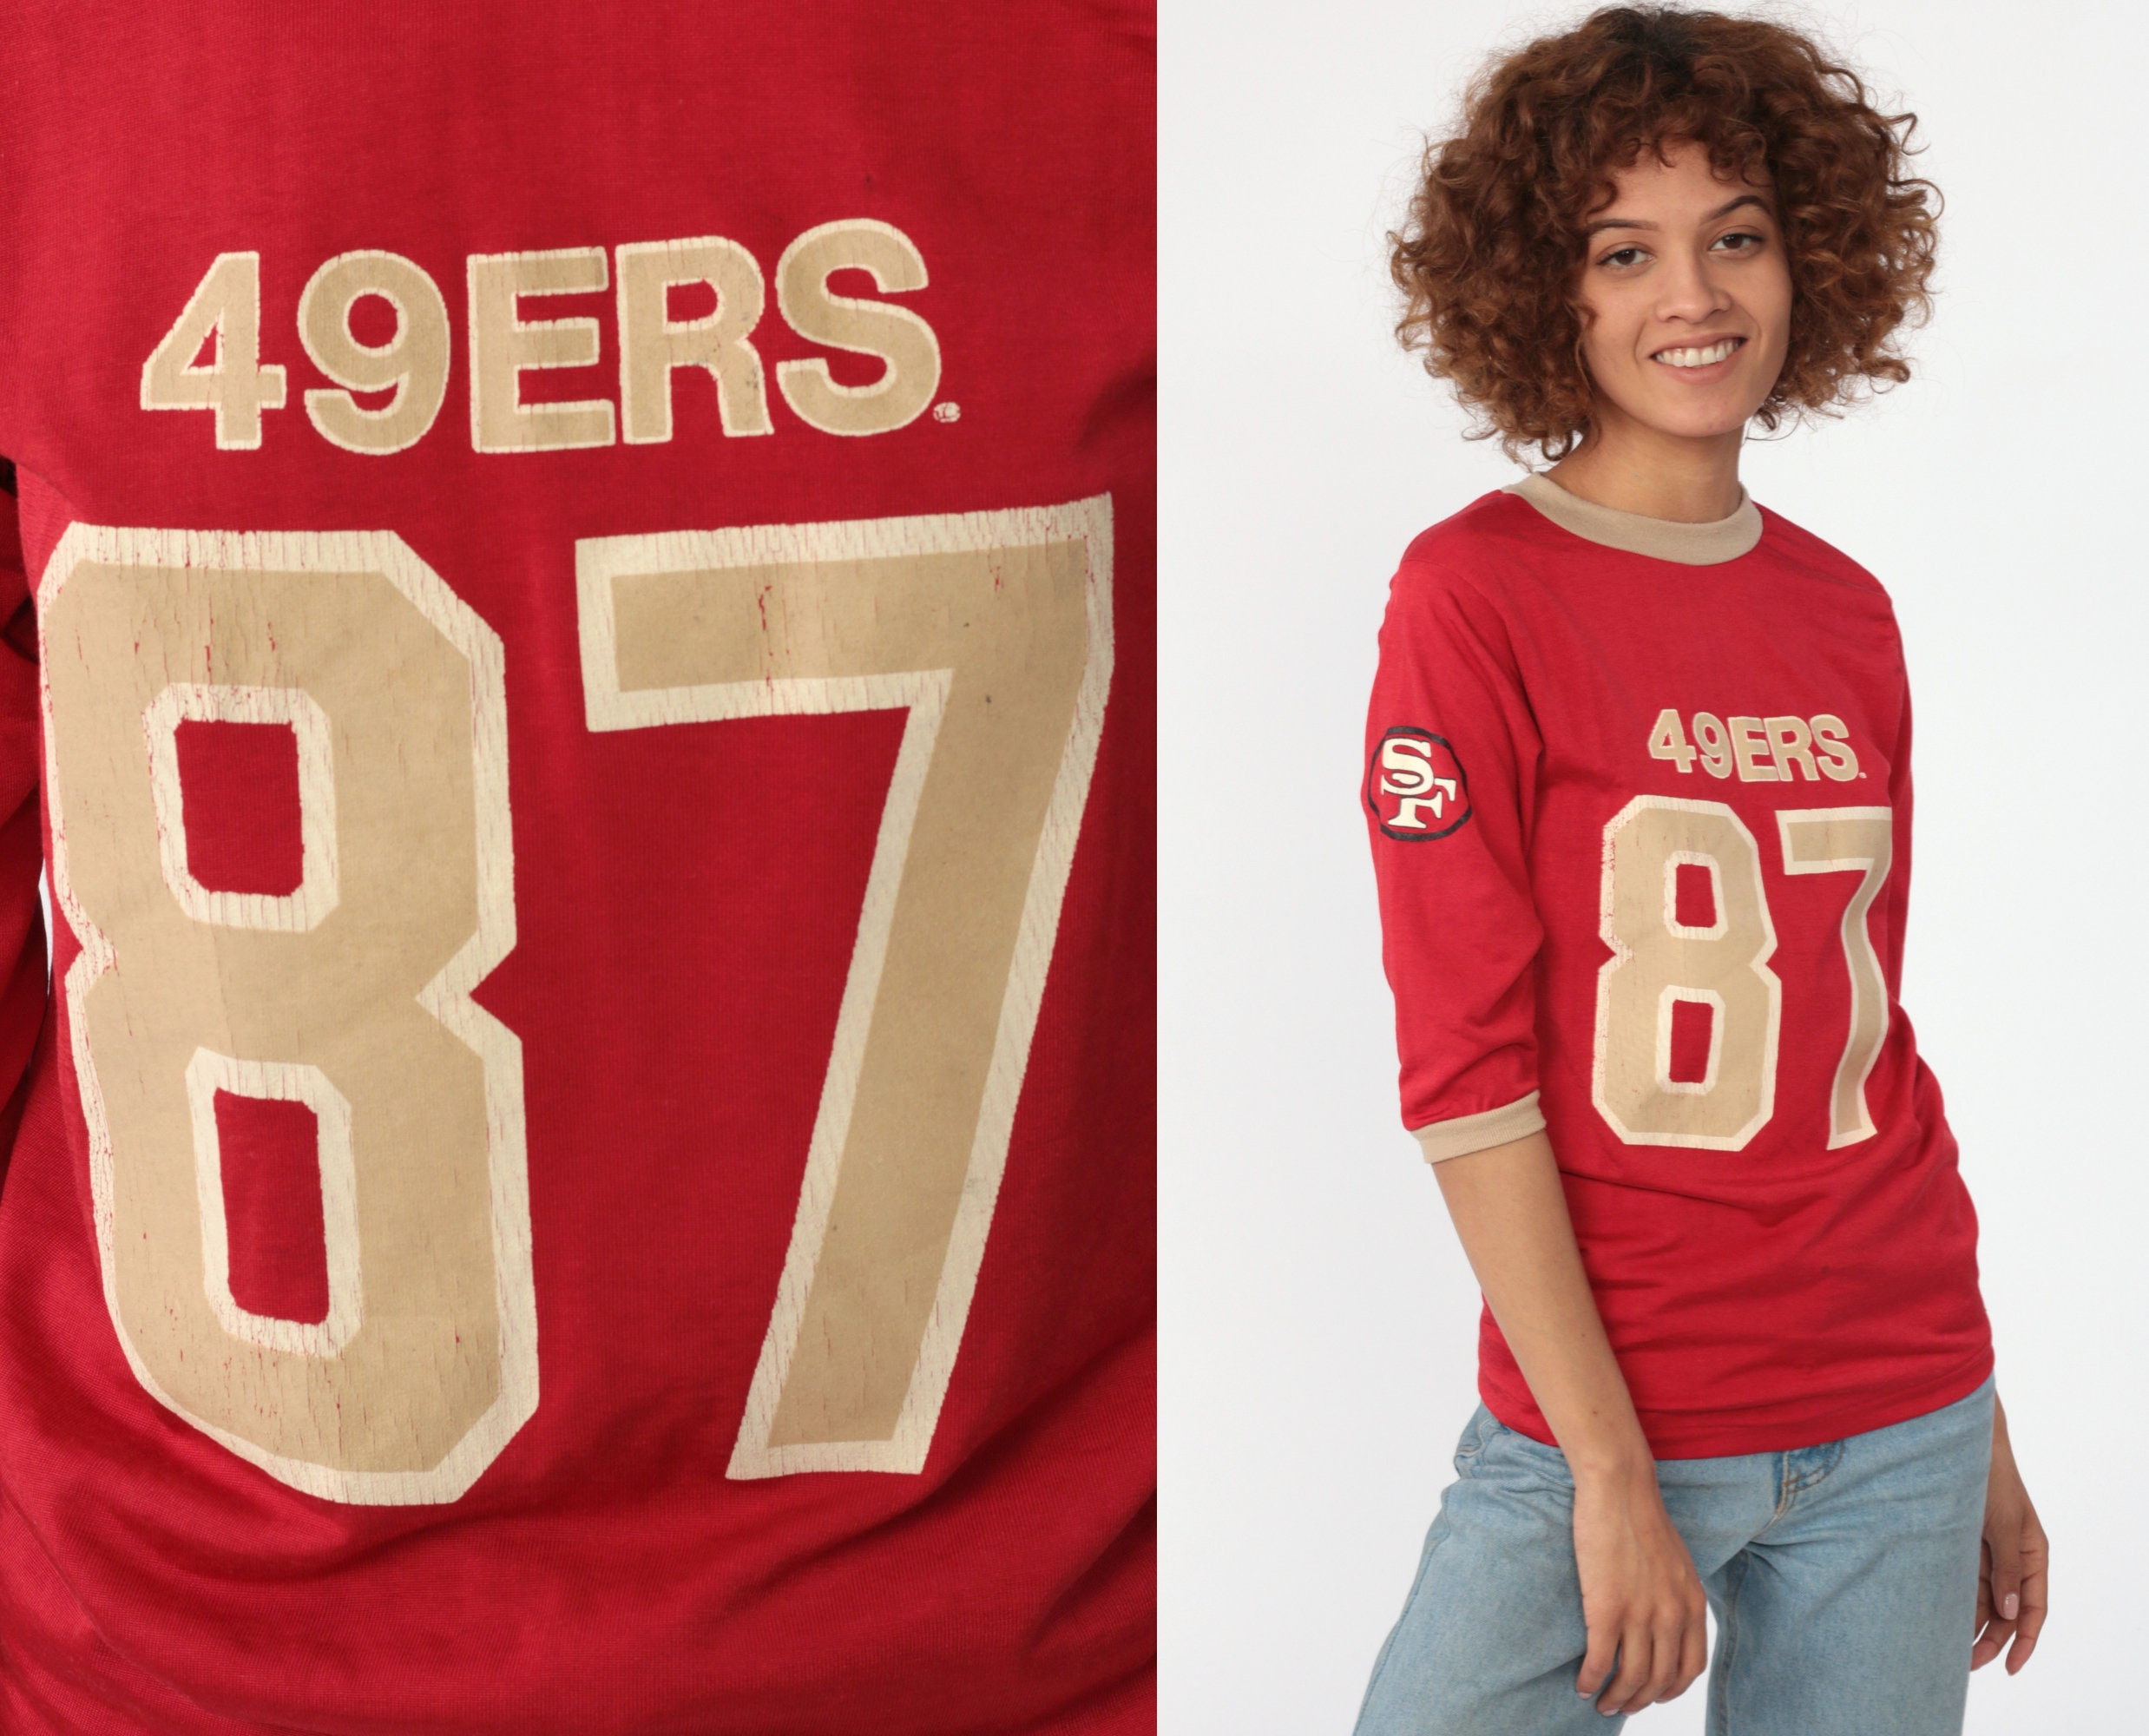 official photos dfc2e ac549 49ers Shirt Football Tshirt San Francisco 80s NFL T Shirt Football Jersey  87 Dwight Clark California Tee Sports Vintage Retro Extra Small xs